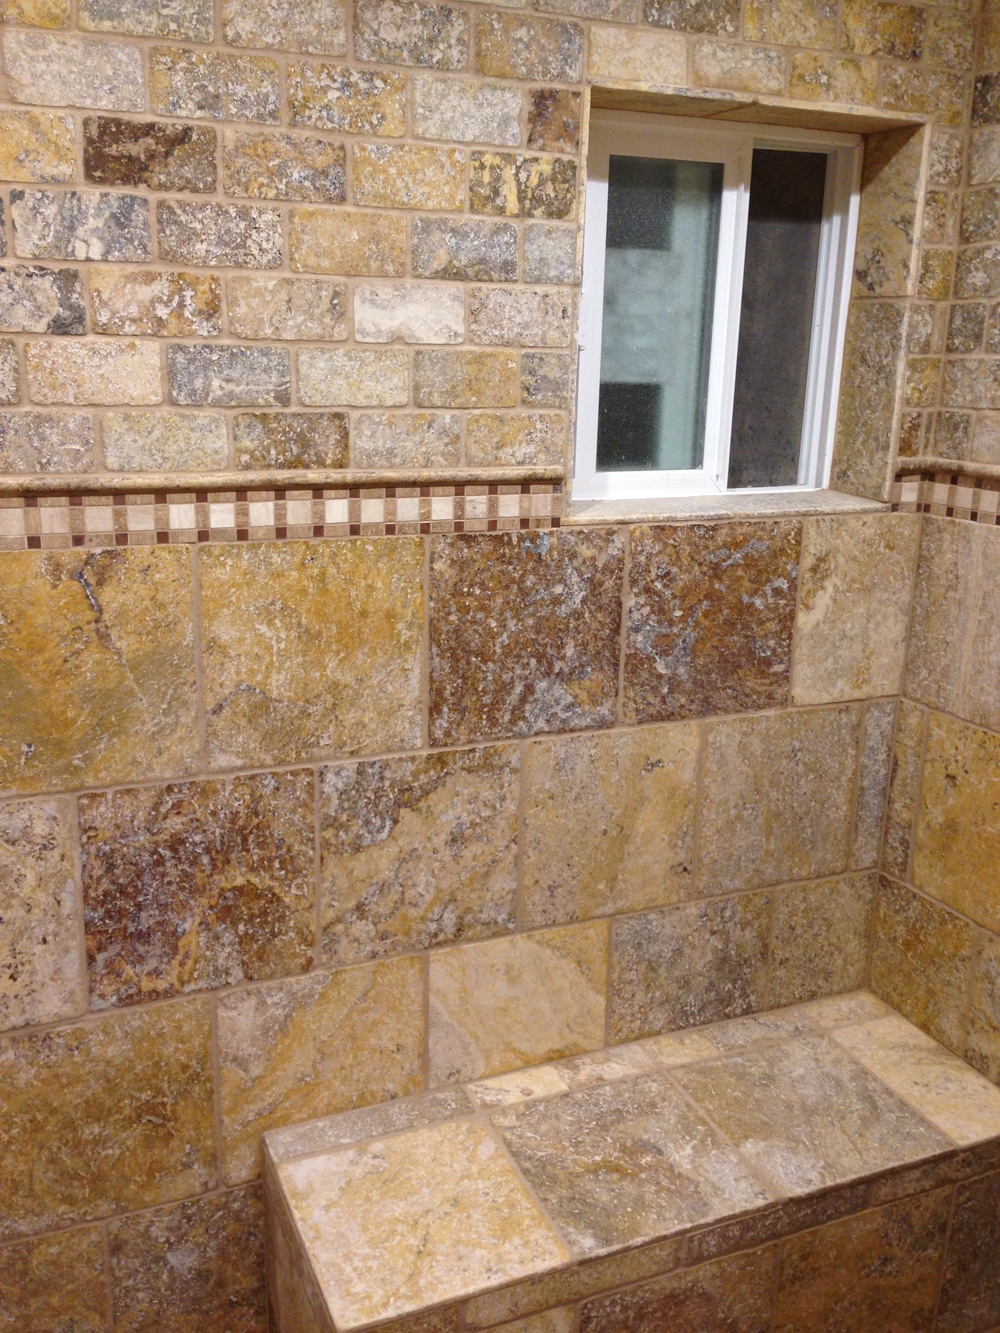 Naturalstone Travertinetiles Scabos Tile Encounters